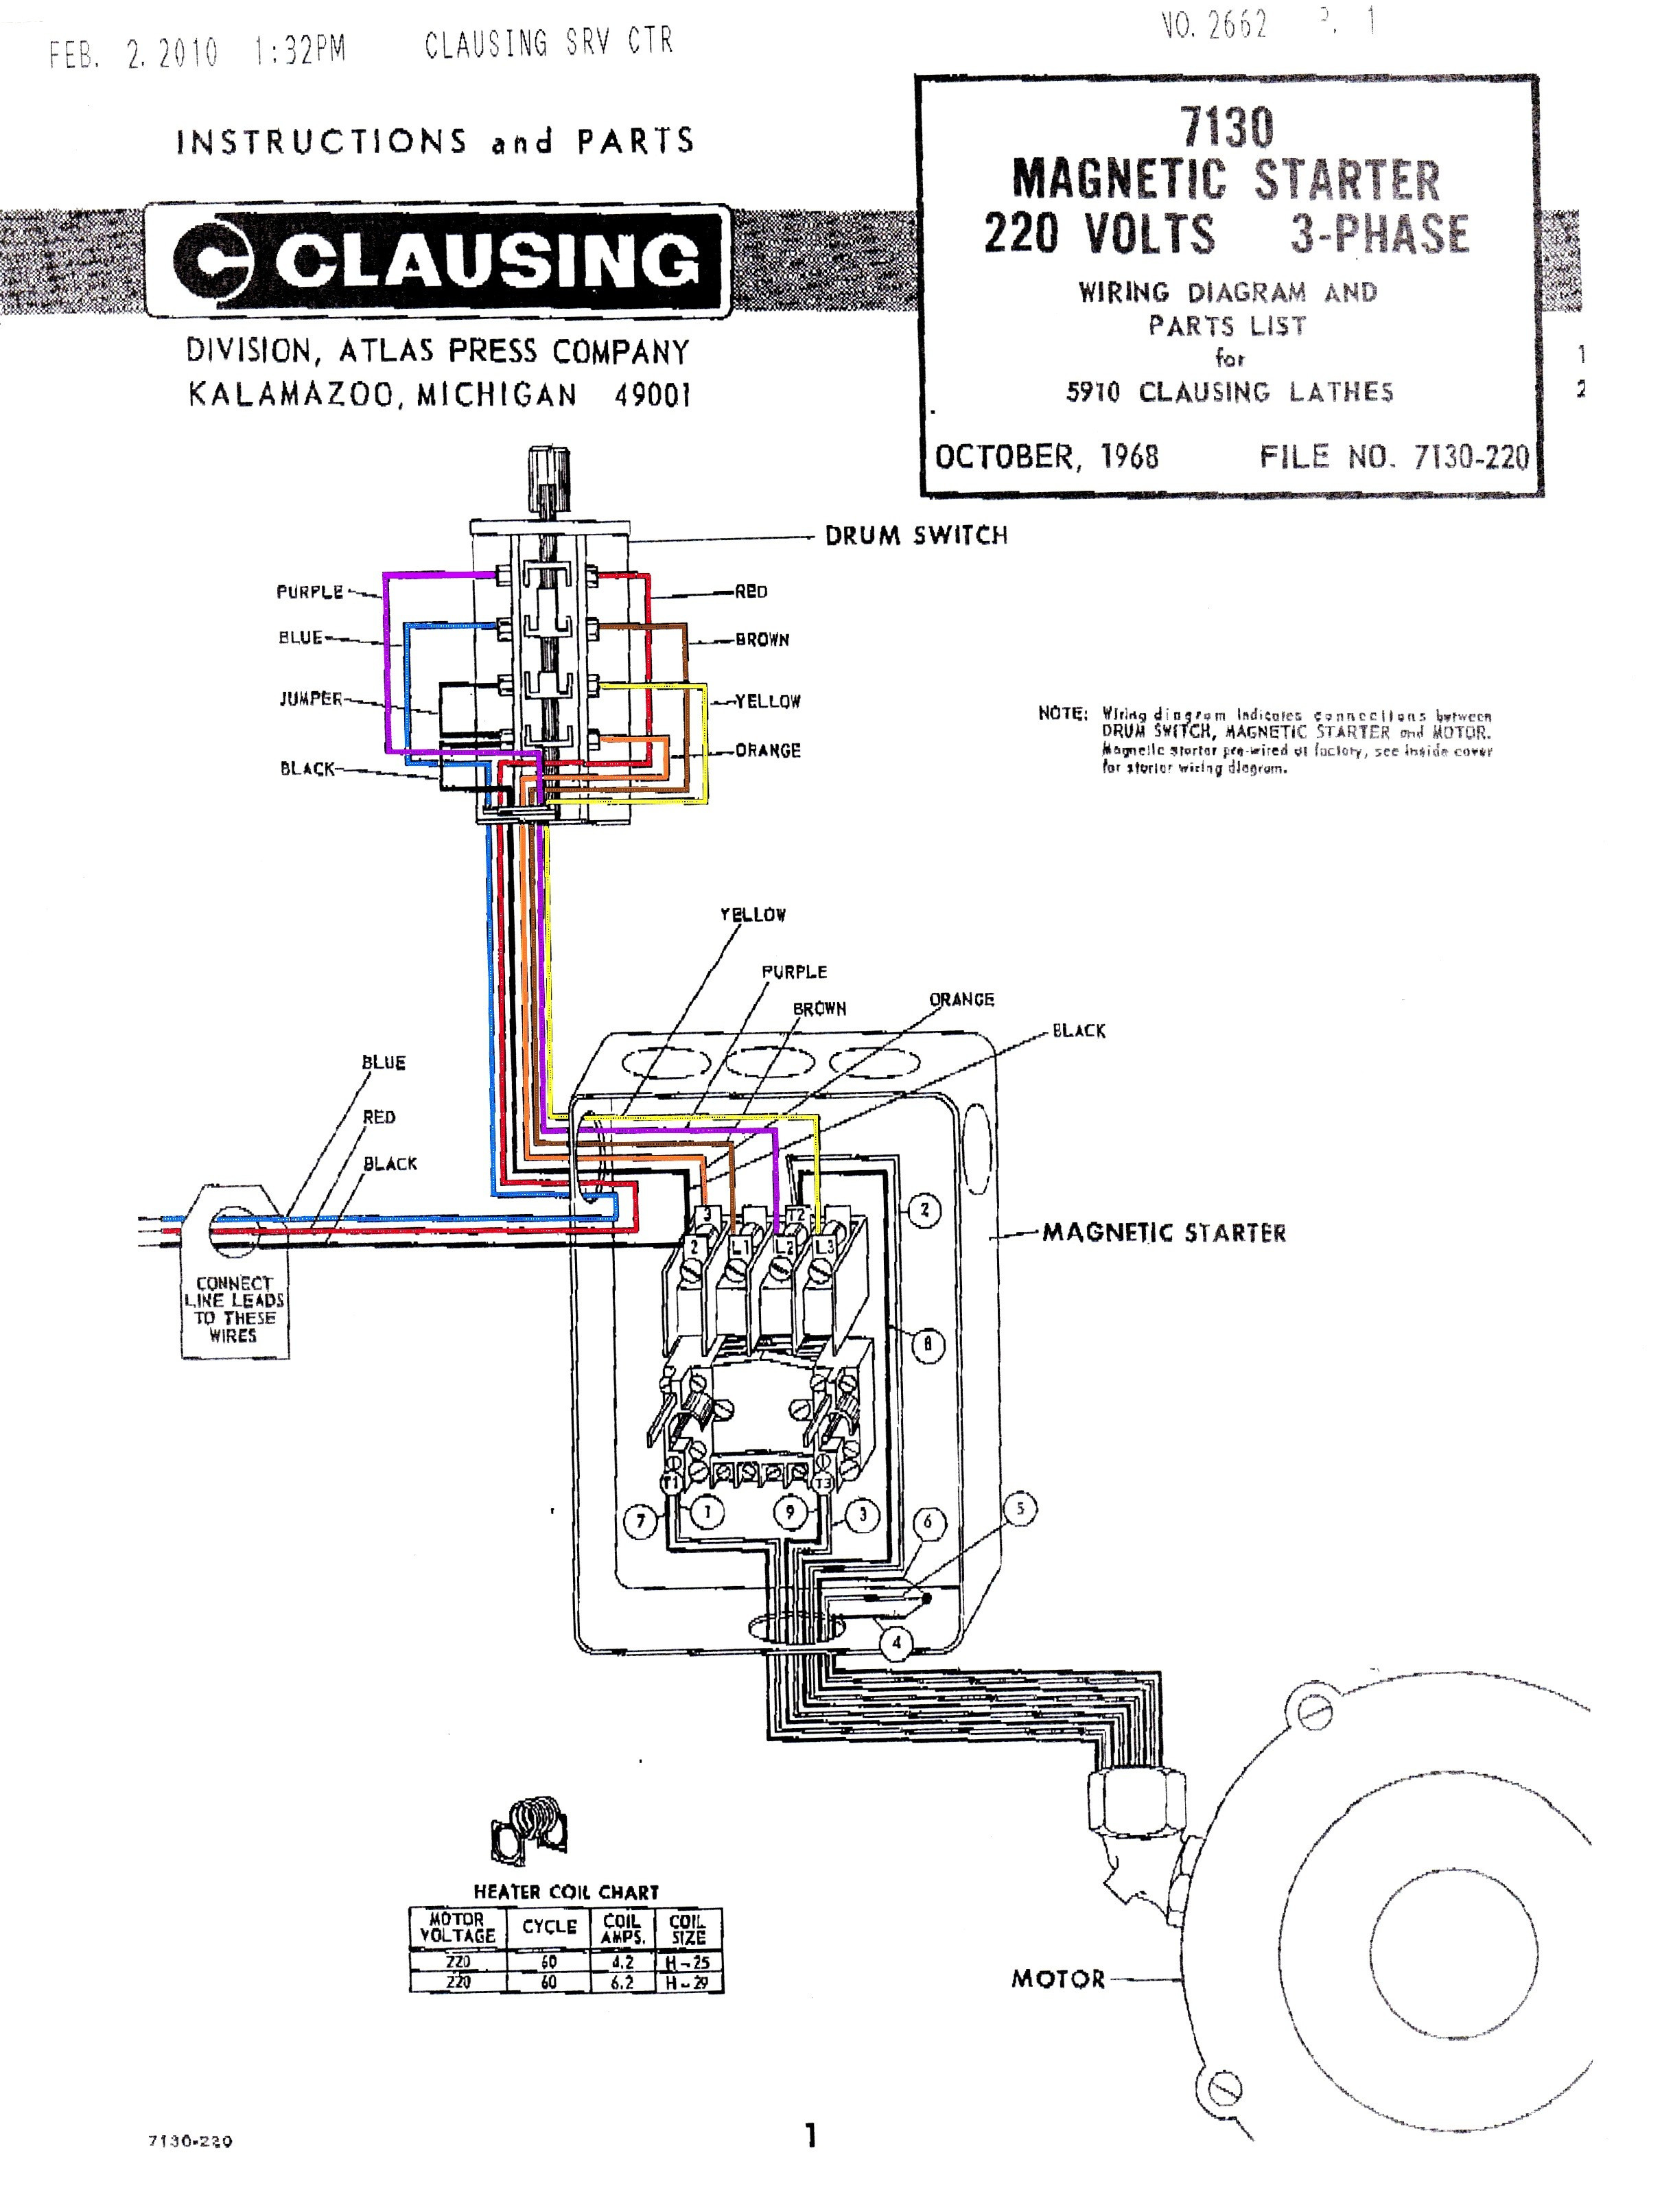 medium resolution of srv wiring diagram wiring diagram srv wiring diagram electrical wiring diagram3 phase switch wiring diagram free